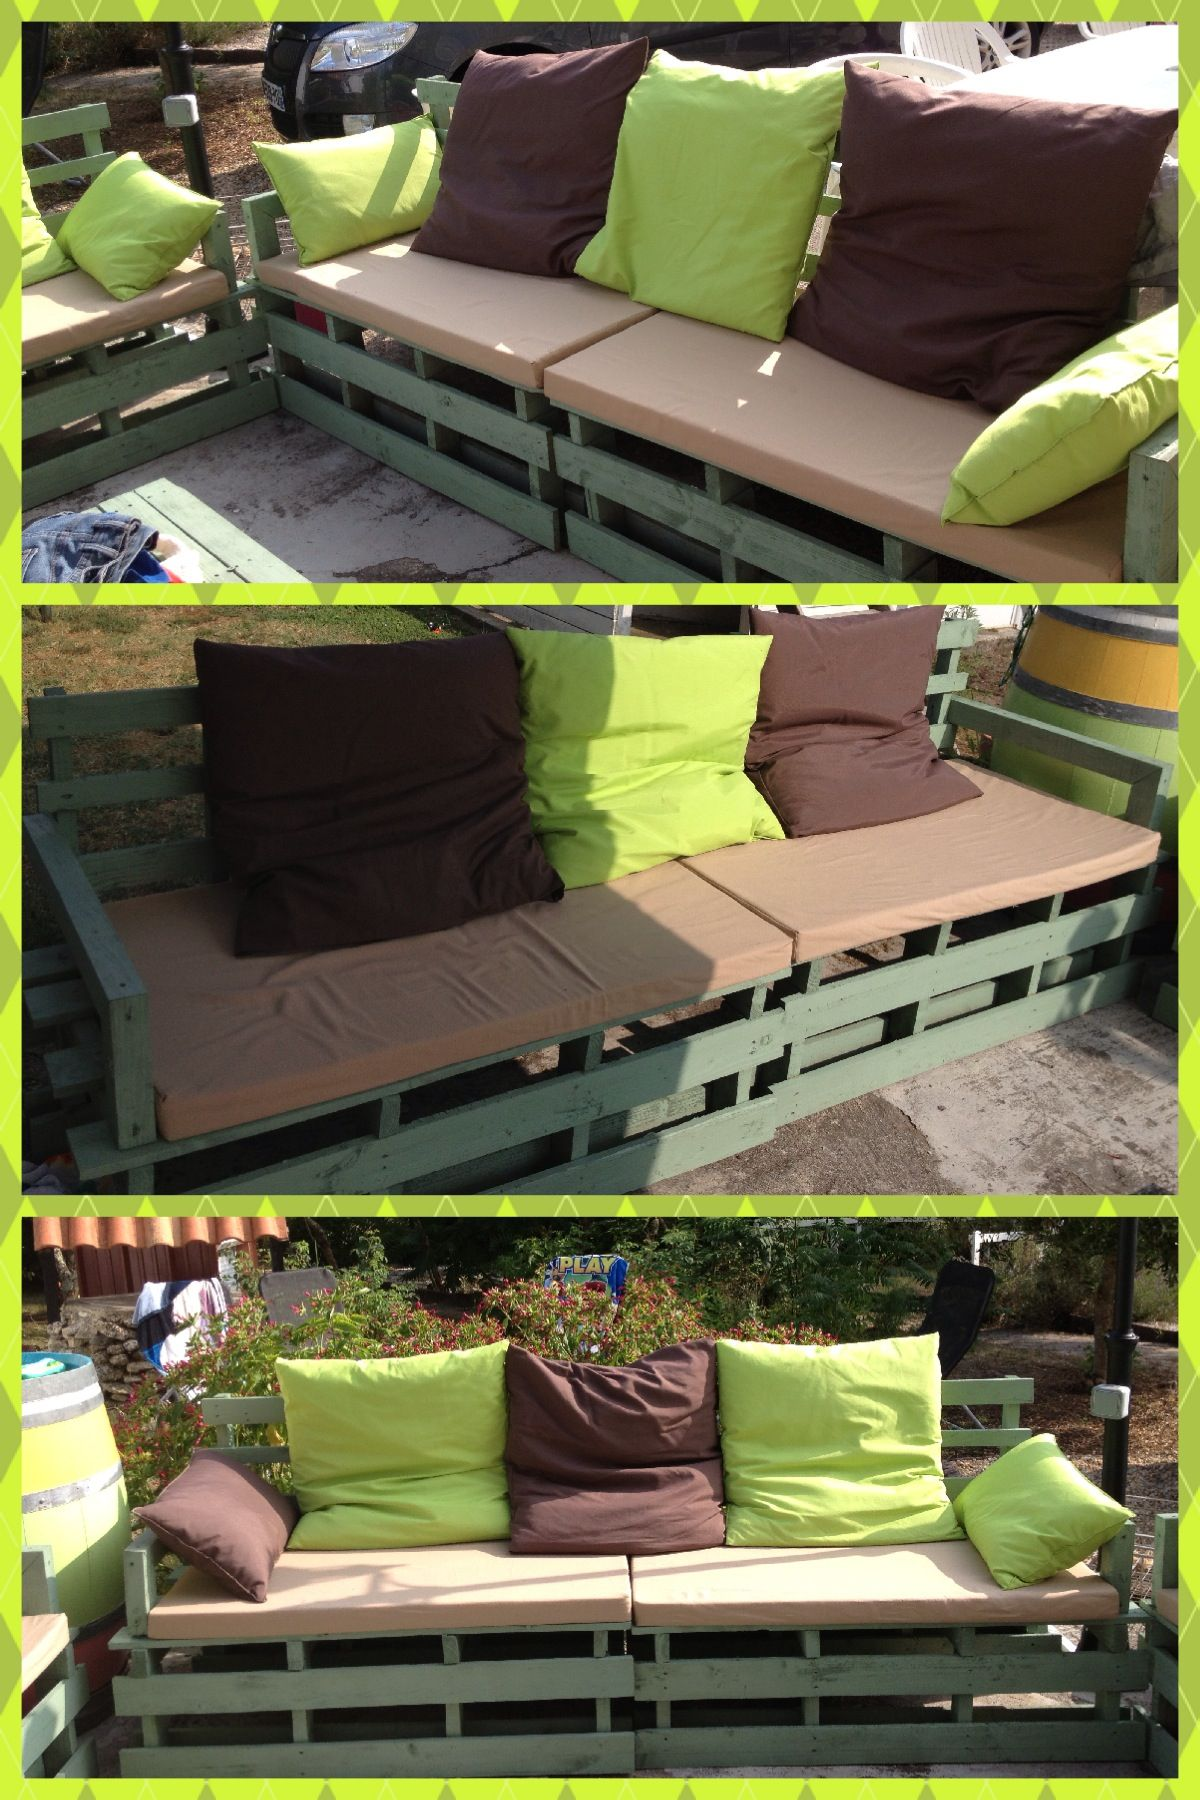 mon salon de jardin avec palette de recup 39 et coussins maison garden pinterest pallets. Black Bedroom Furniture Sets. Home Design Ideas